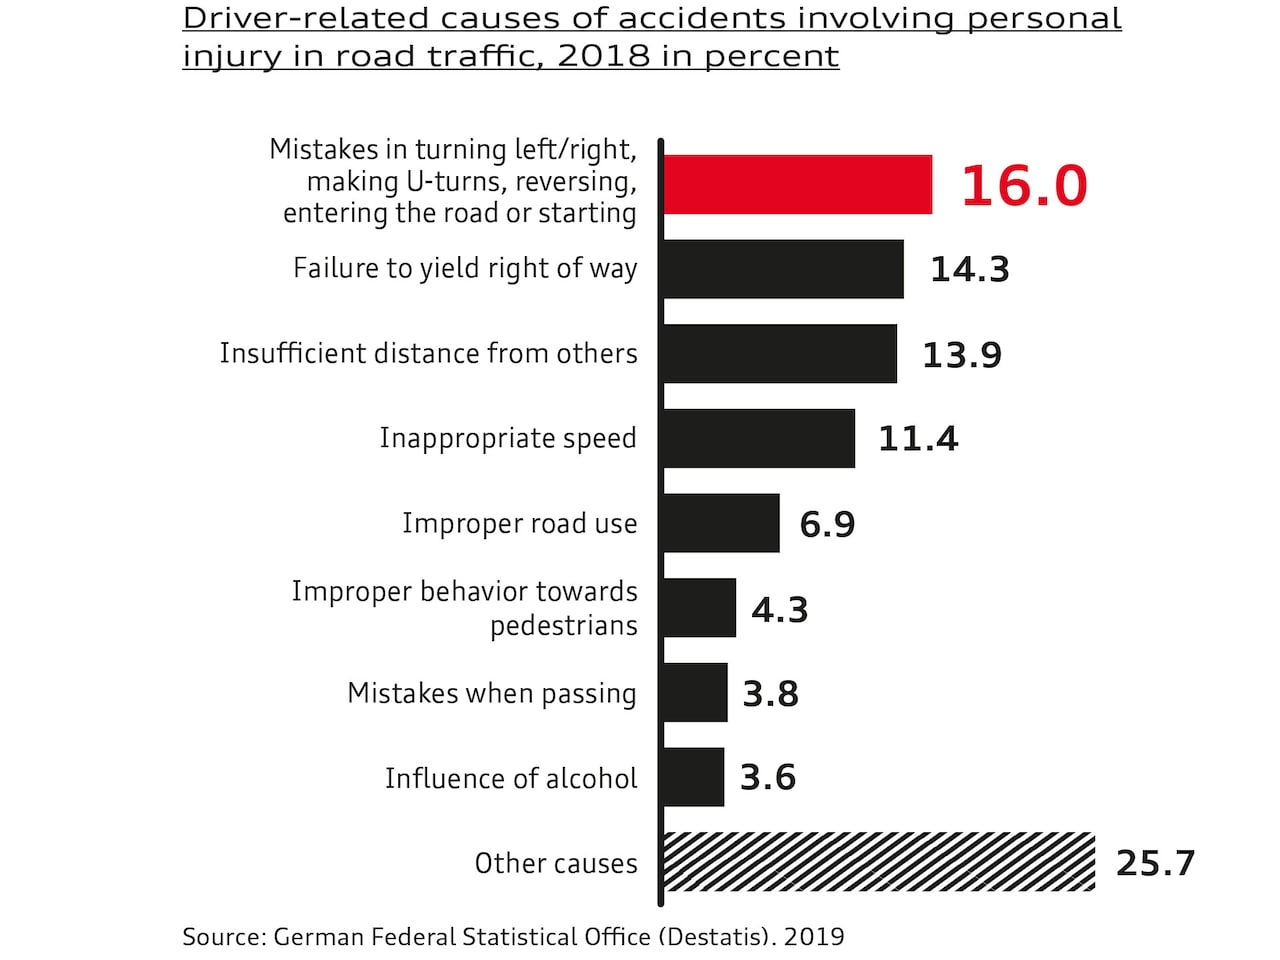 Driver-related causes of accidents involving personal injury in road traffic, 2018 in percent (Germany). Source: German Federal Statistical Office (Destatis), 2019